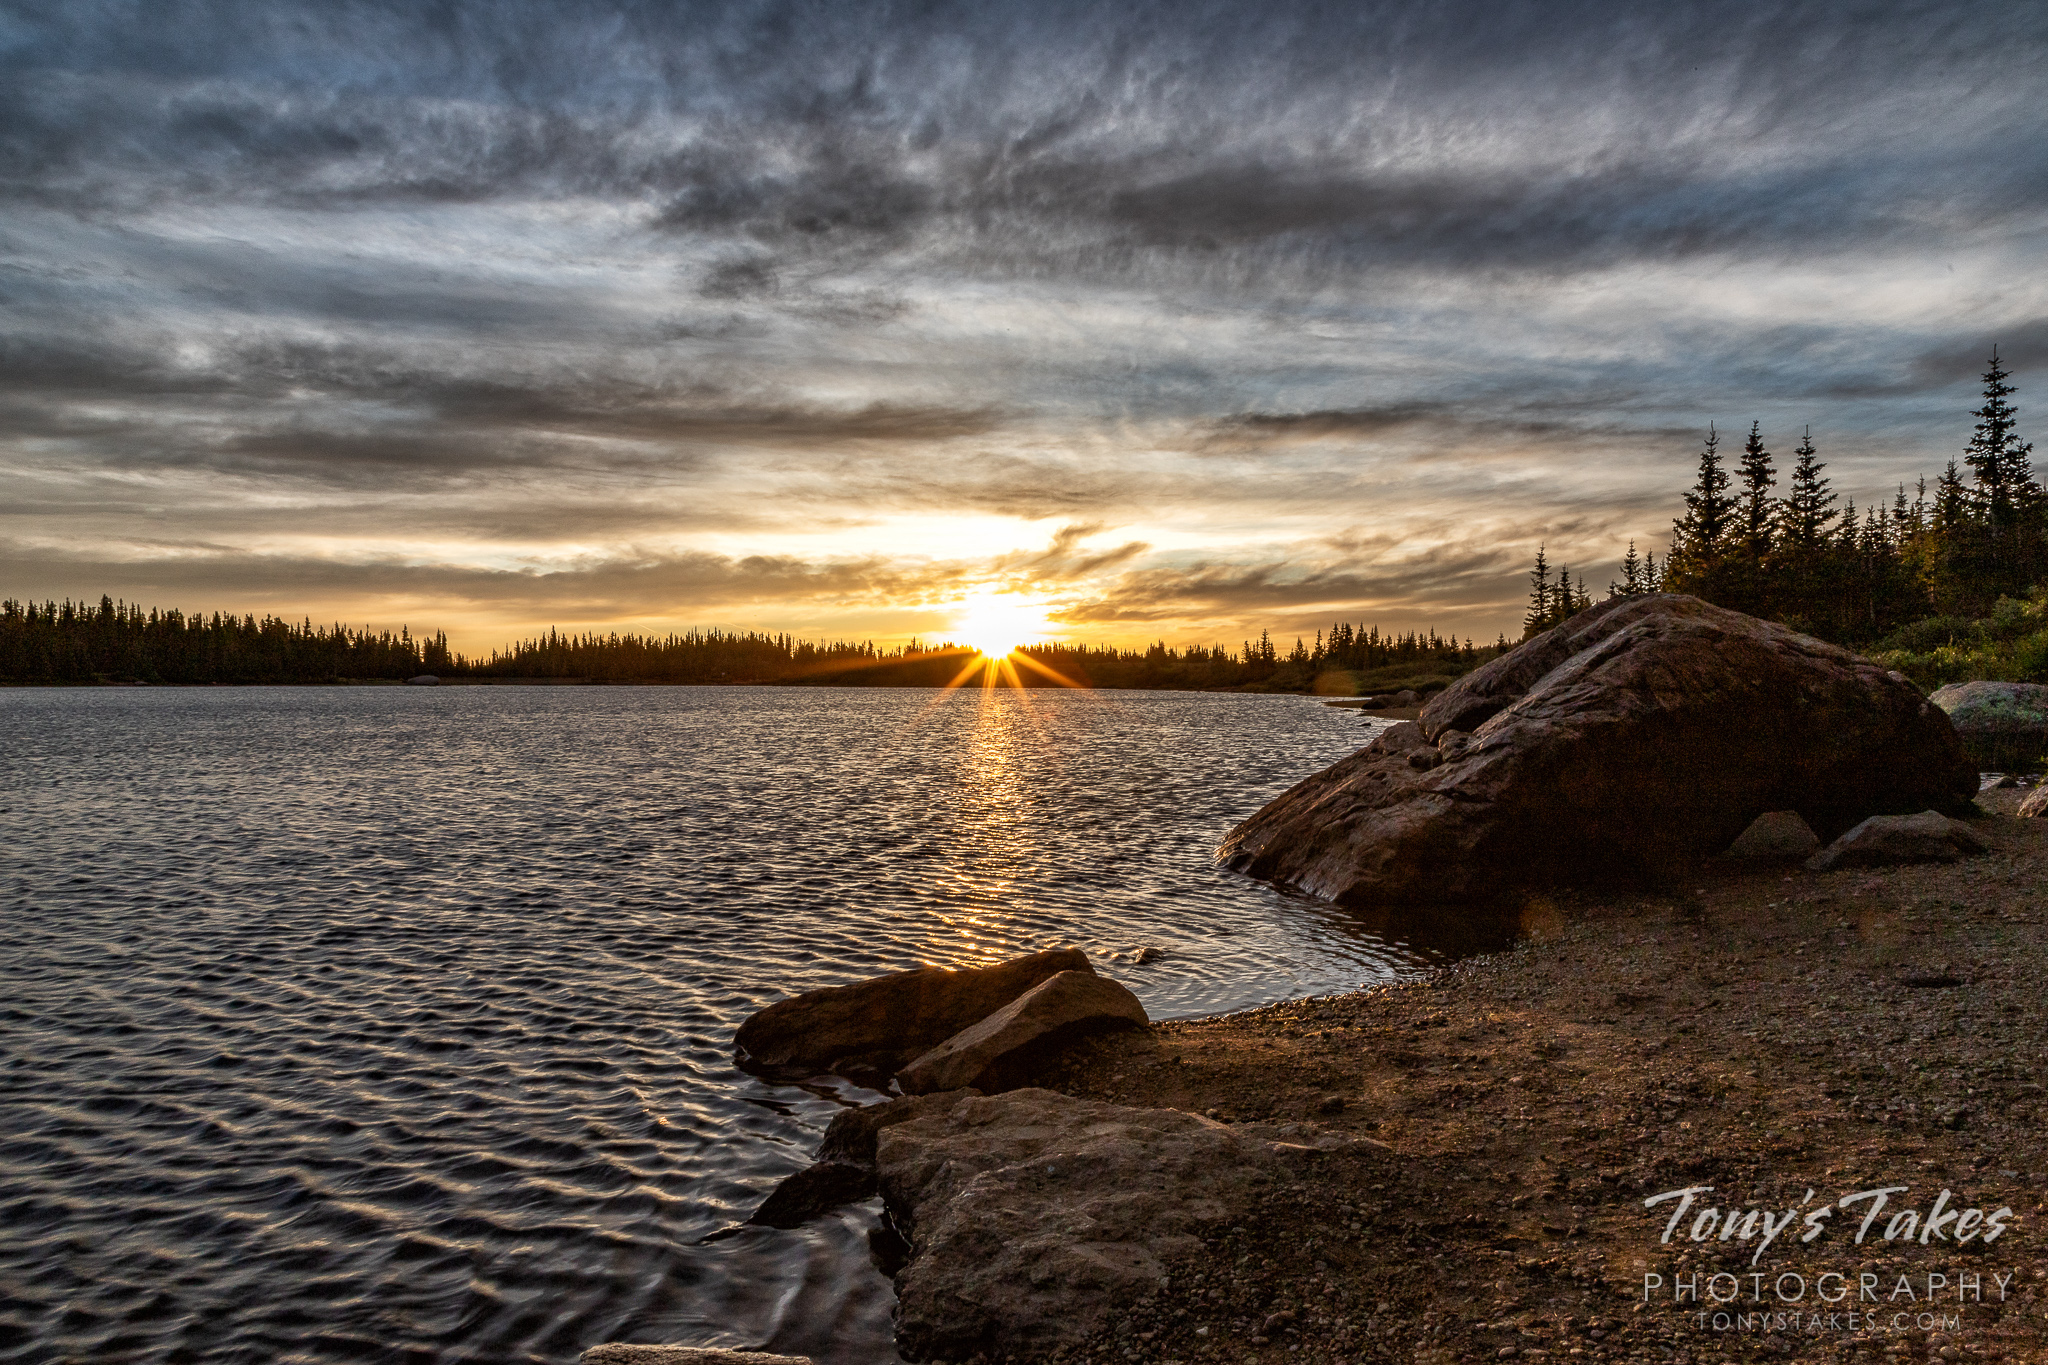 The sun rises over the horizon at Brainard Lake in Colorado. (© Tony's Takes)